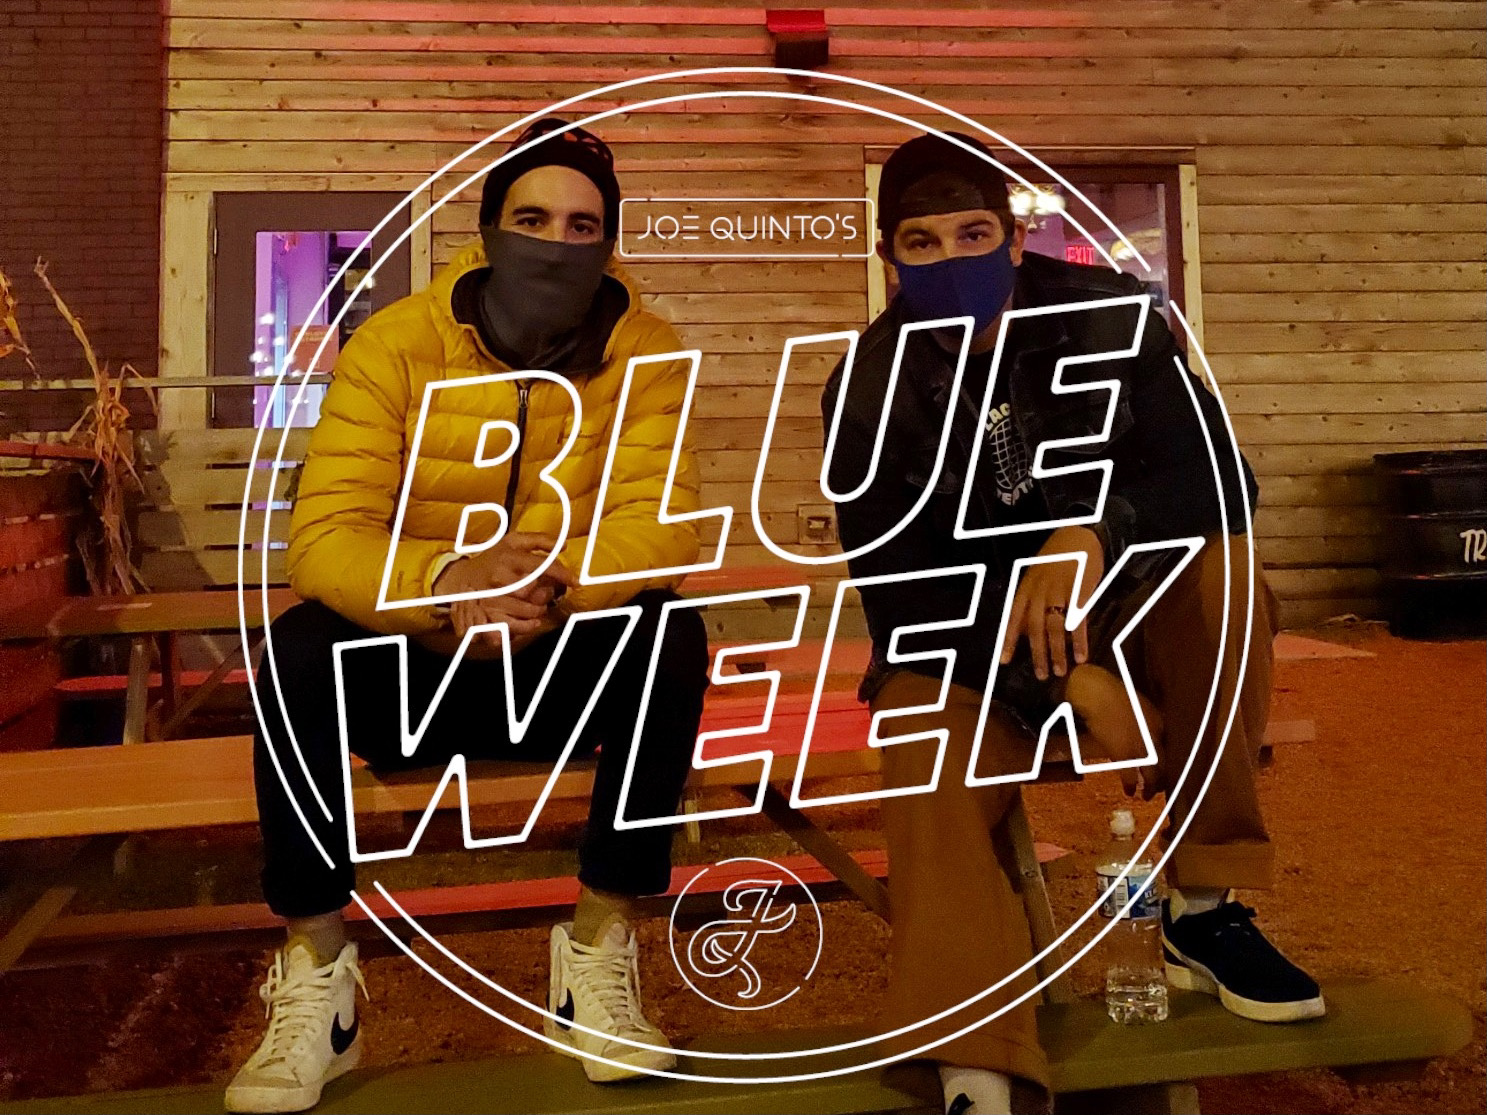 Joe Quinto and Jesus Gonzalez for Blue Week